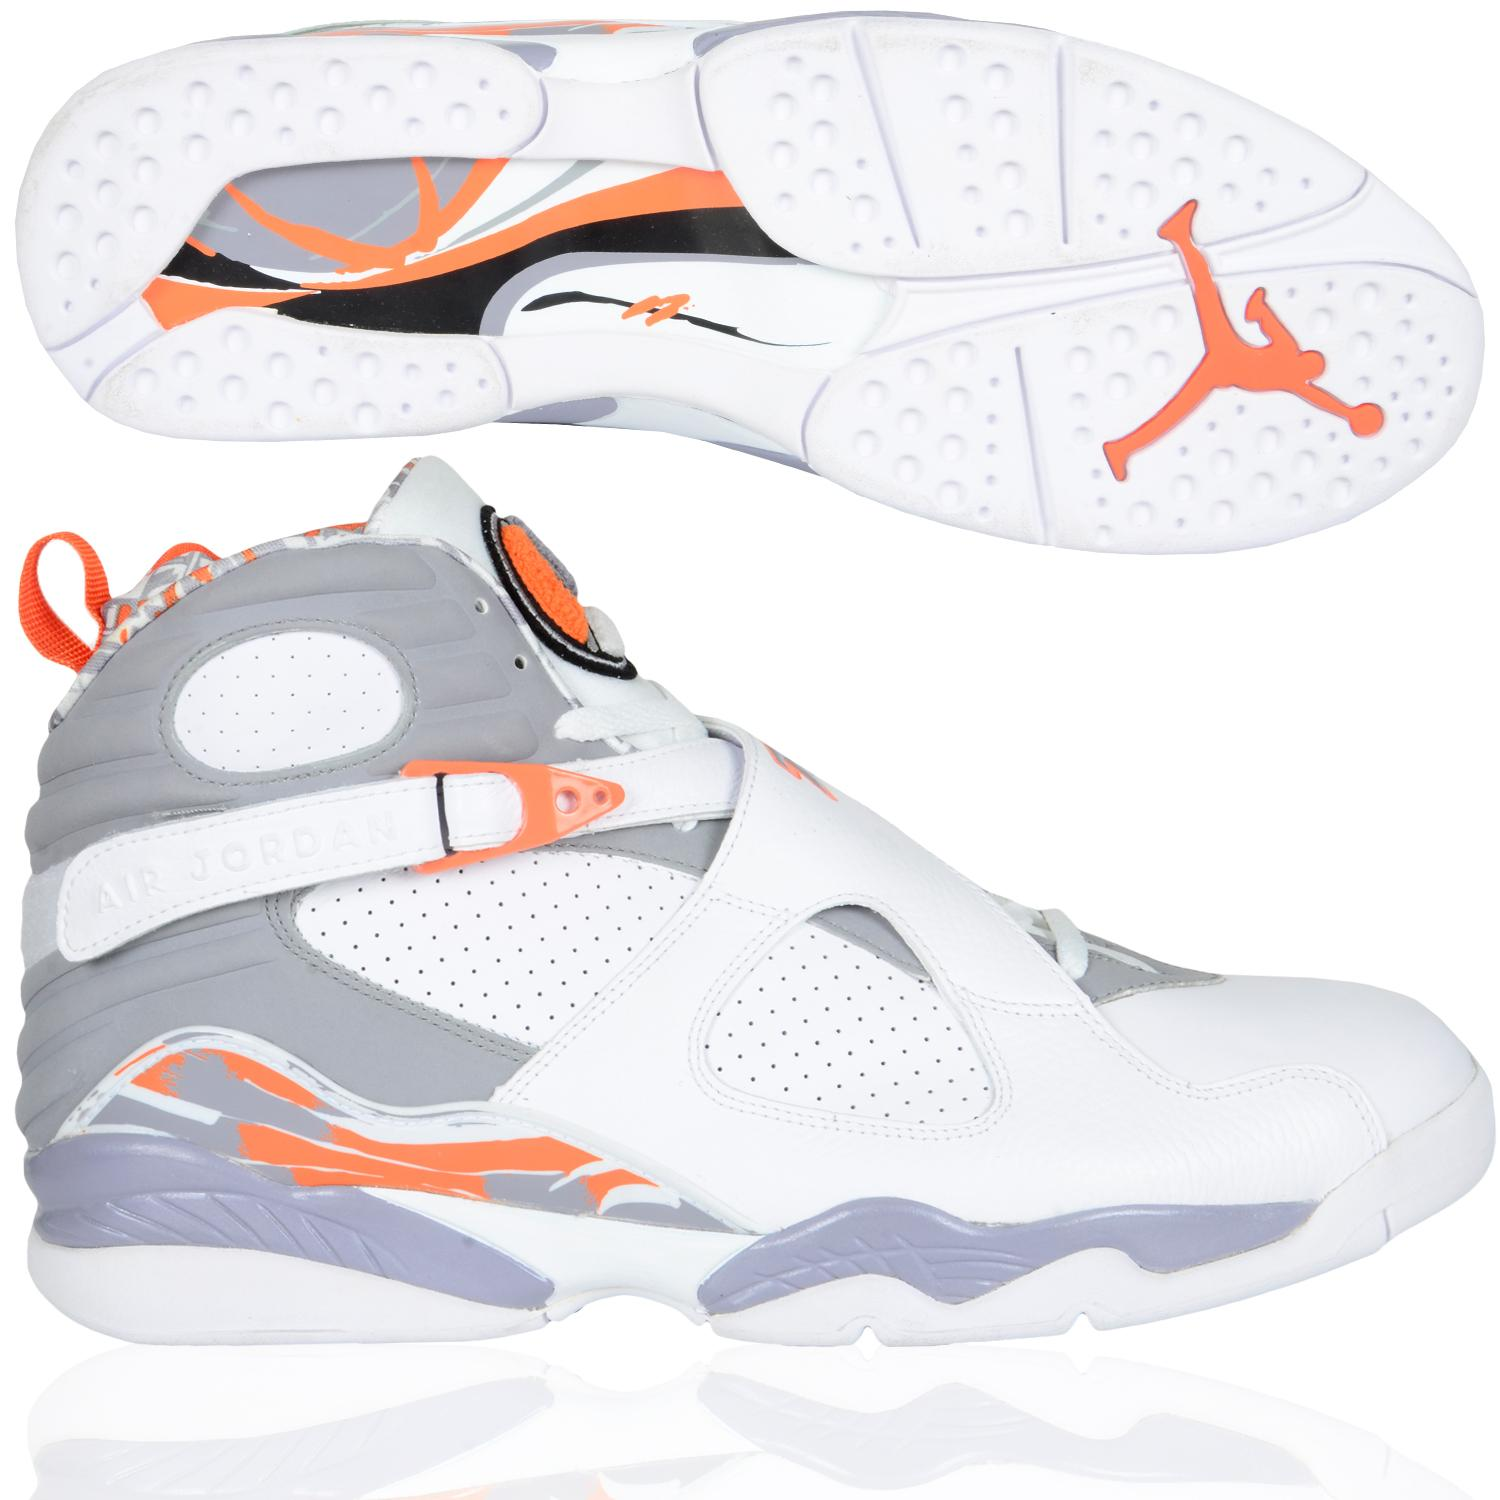 quality design 677c3 373e2 ... original zapatos air jordan 8 pea pod blaze air jordan 8 blanco and  naranja .